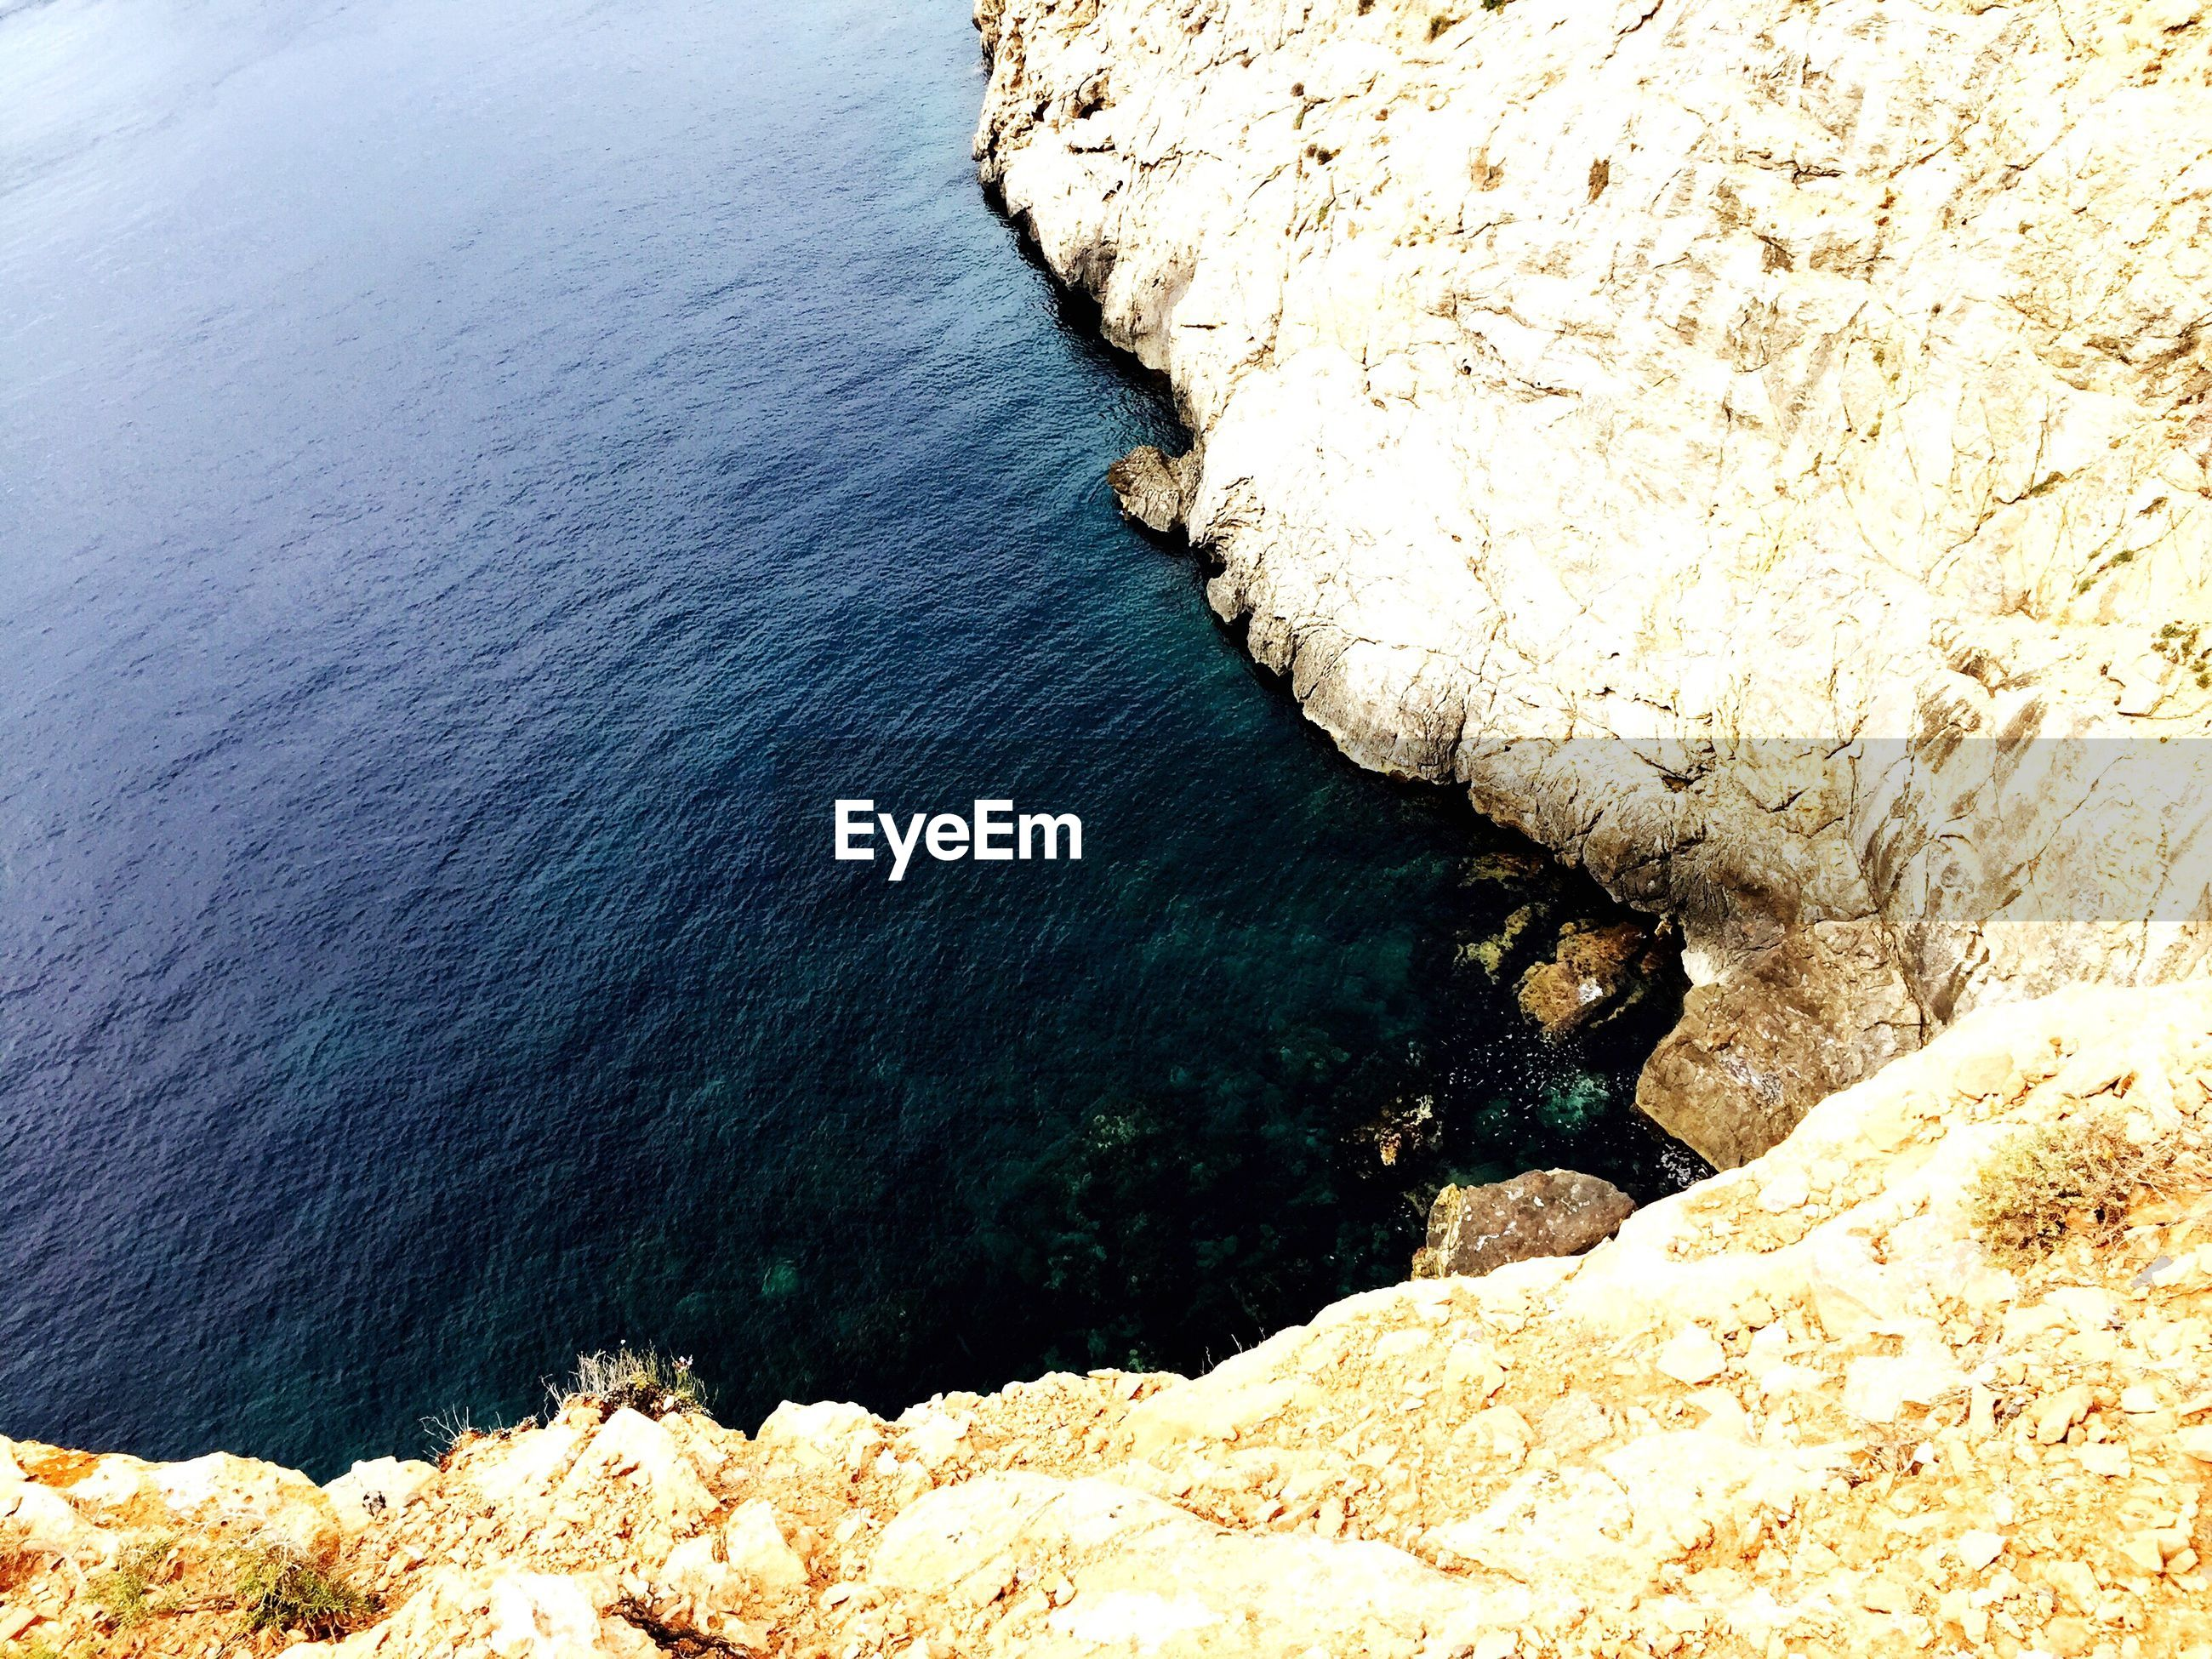 water, rock - object, high angle view, nature, beauty in nature, no people, day, sea, scenics, outdoors, close-up